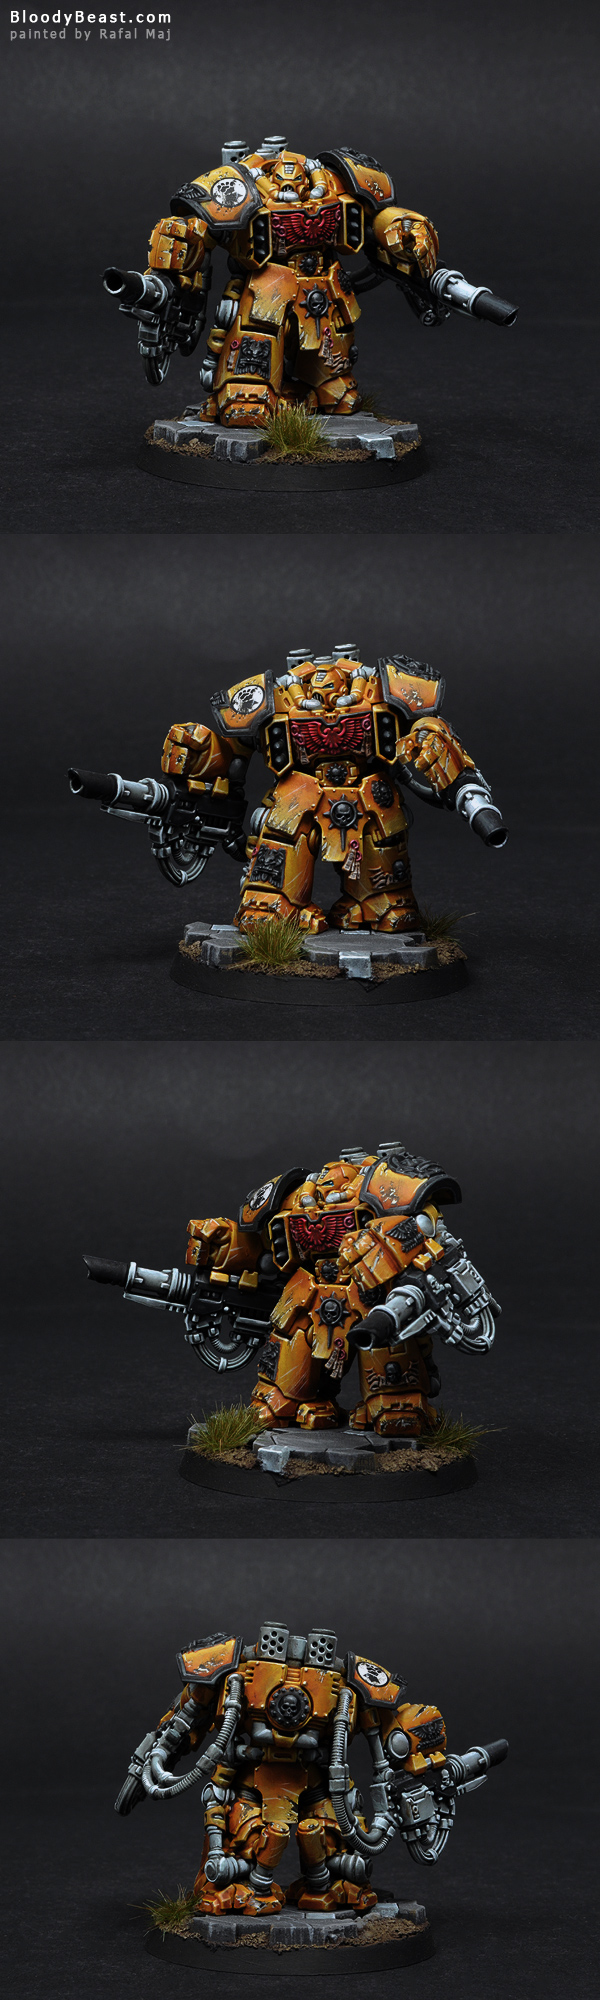 Imperial Fists Centurion Devastator painted by Rafal Maj (BloodyBeast.com)